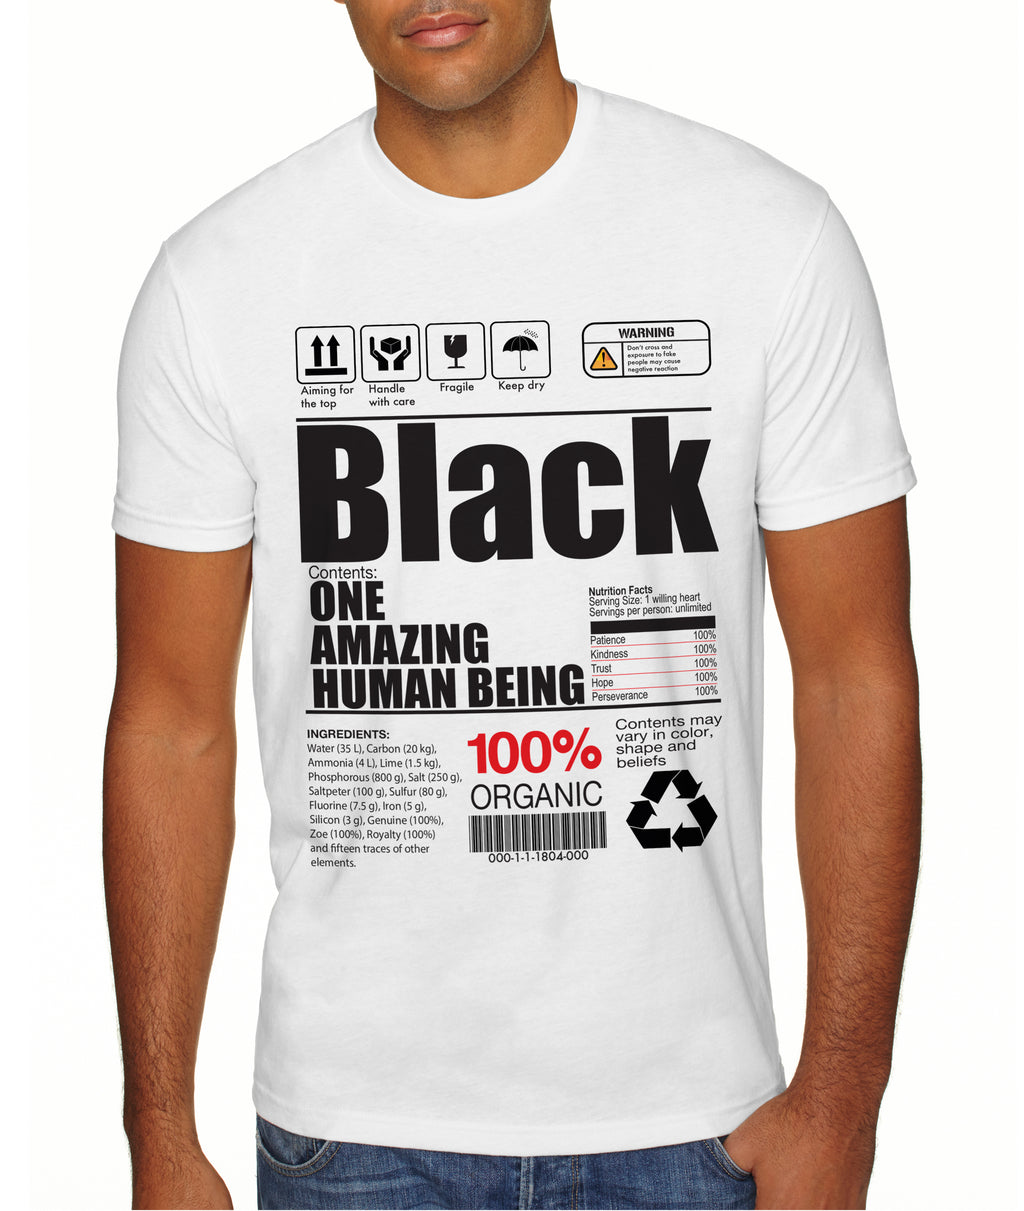 BLACK-AMAZING HUMAN BEING-INGREDIENTS